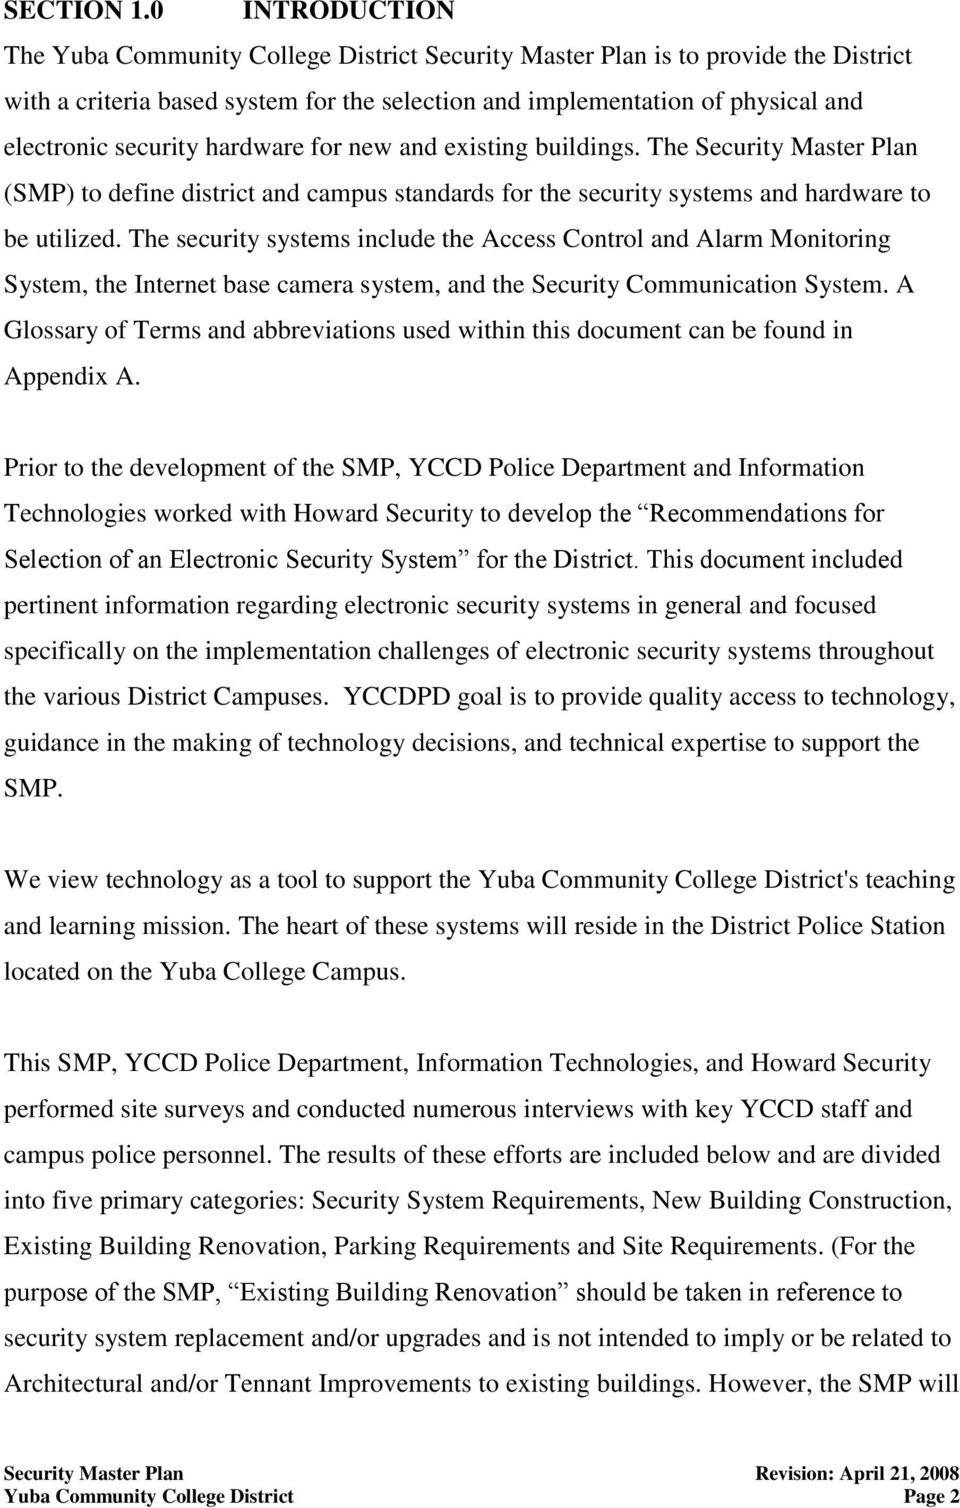 security hardware for new and existing buildings. The Security Master Plan (SMP) to define district and campus standards for the security systems and hardware to be utilized.